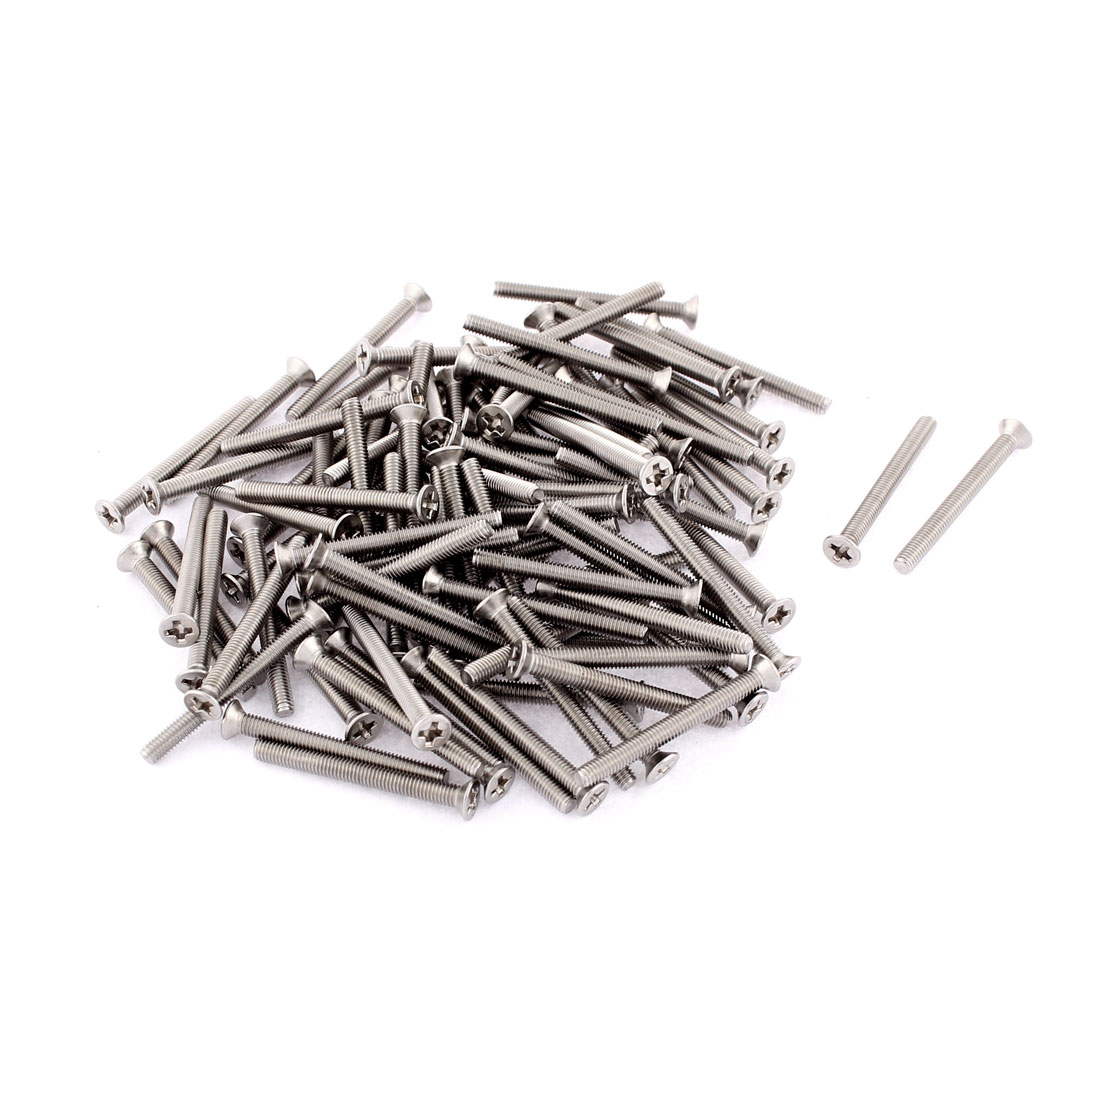 M3 x 30mm Phillips Head Stainless Steel Countersunk Bolts Machine Screws 100pcs